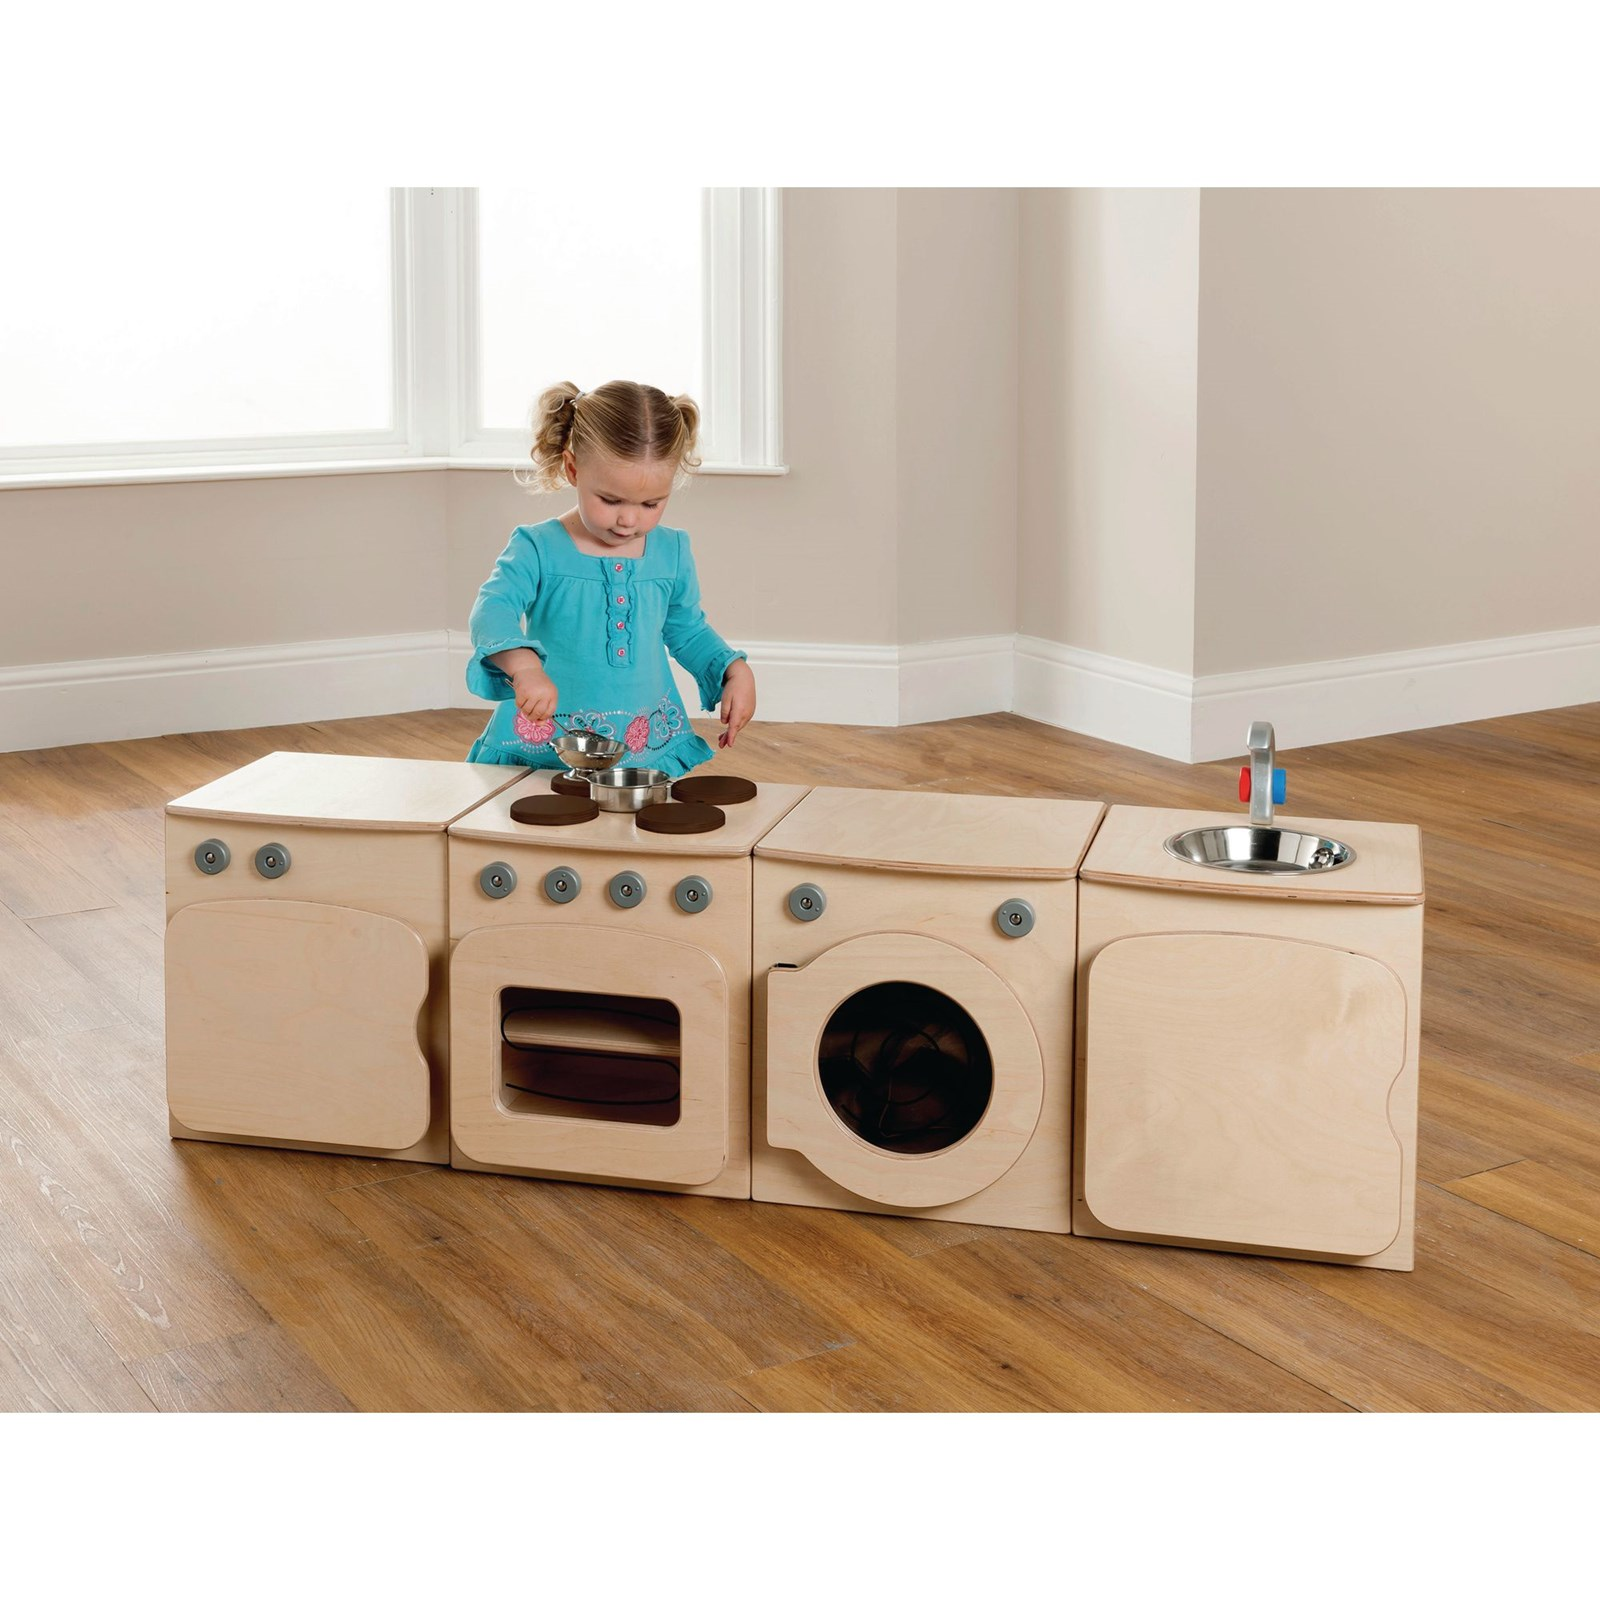 Playscapes Toddler Play Kitchen